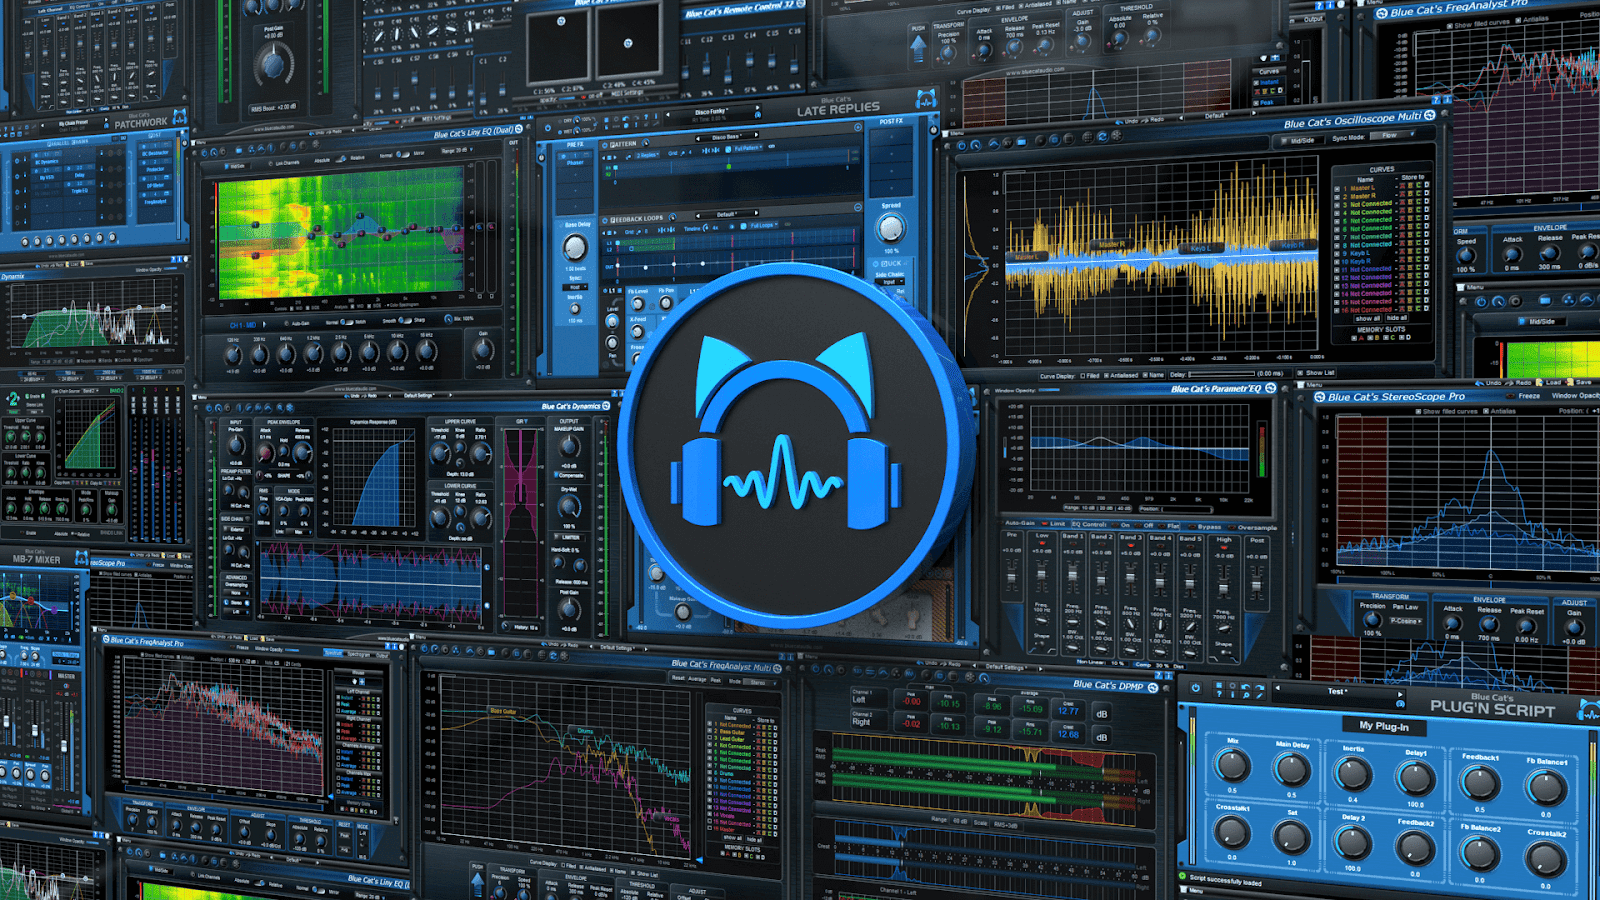 Blue Cat's All Plug-Ins Pack 2019.2 Full version